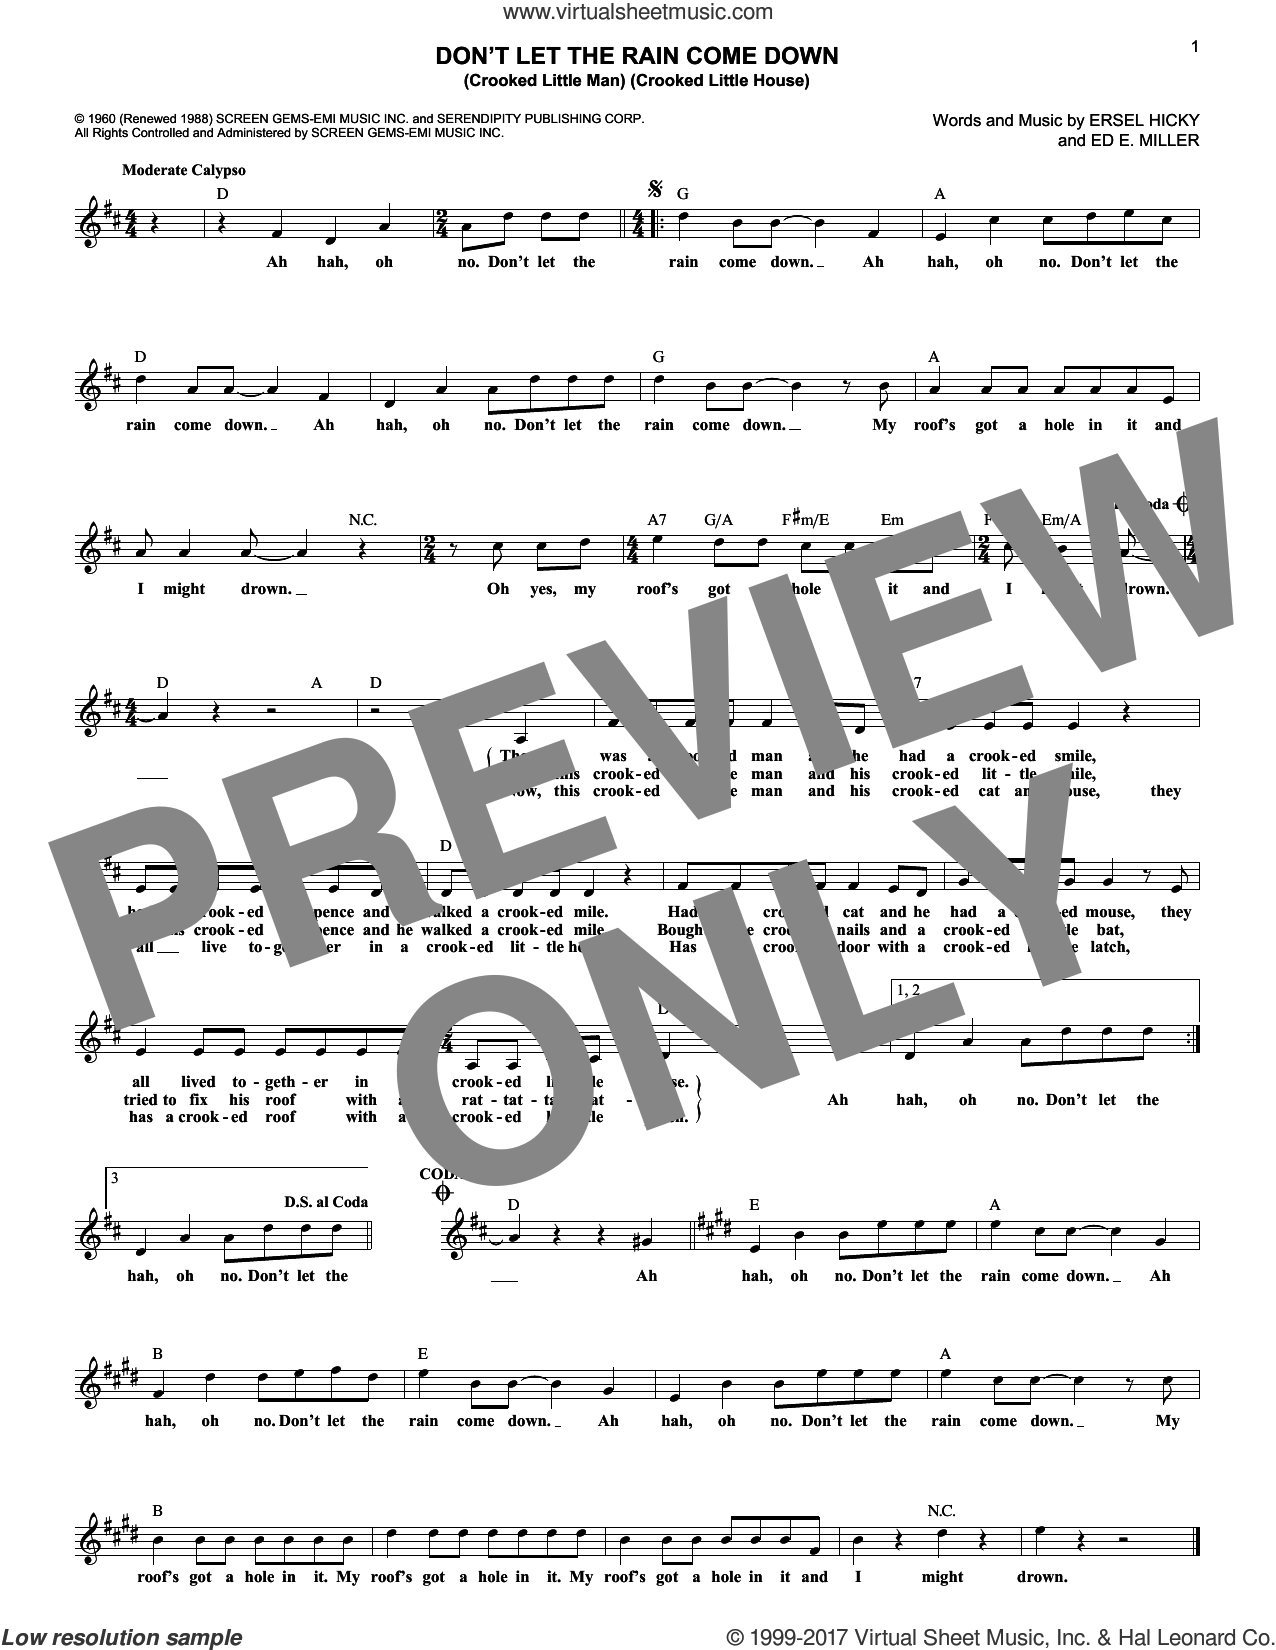 Don't Let The Rain Come Down (Crooked Little Man) (Crooked Little House) sheet music for voice and other instruments (fake book) by Serendipity Singers, Ed. E. Miller and Ersel Hicky, intermediate skill level